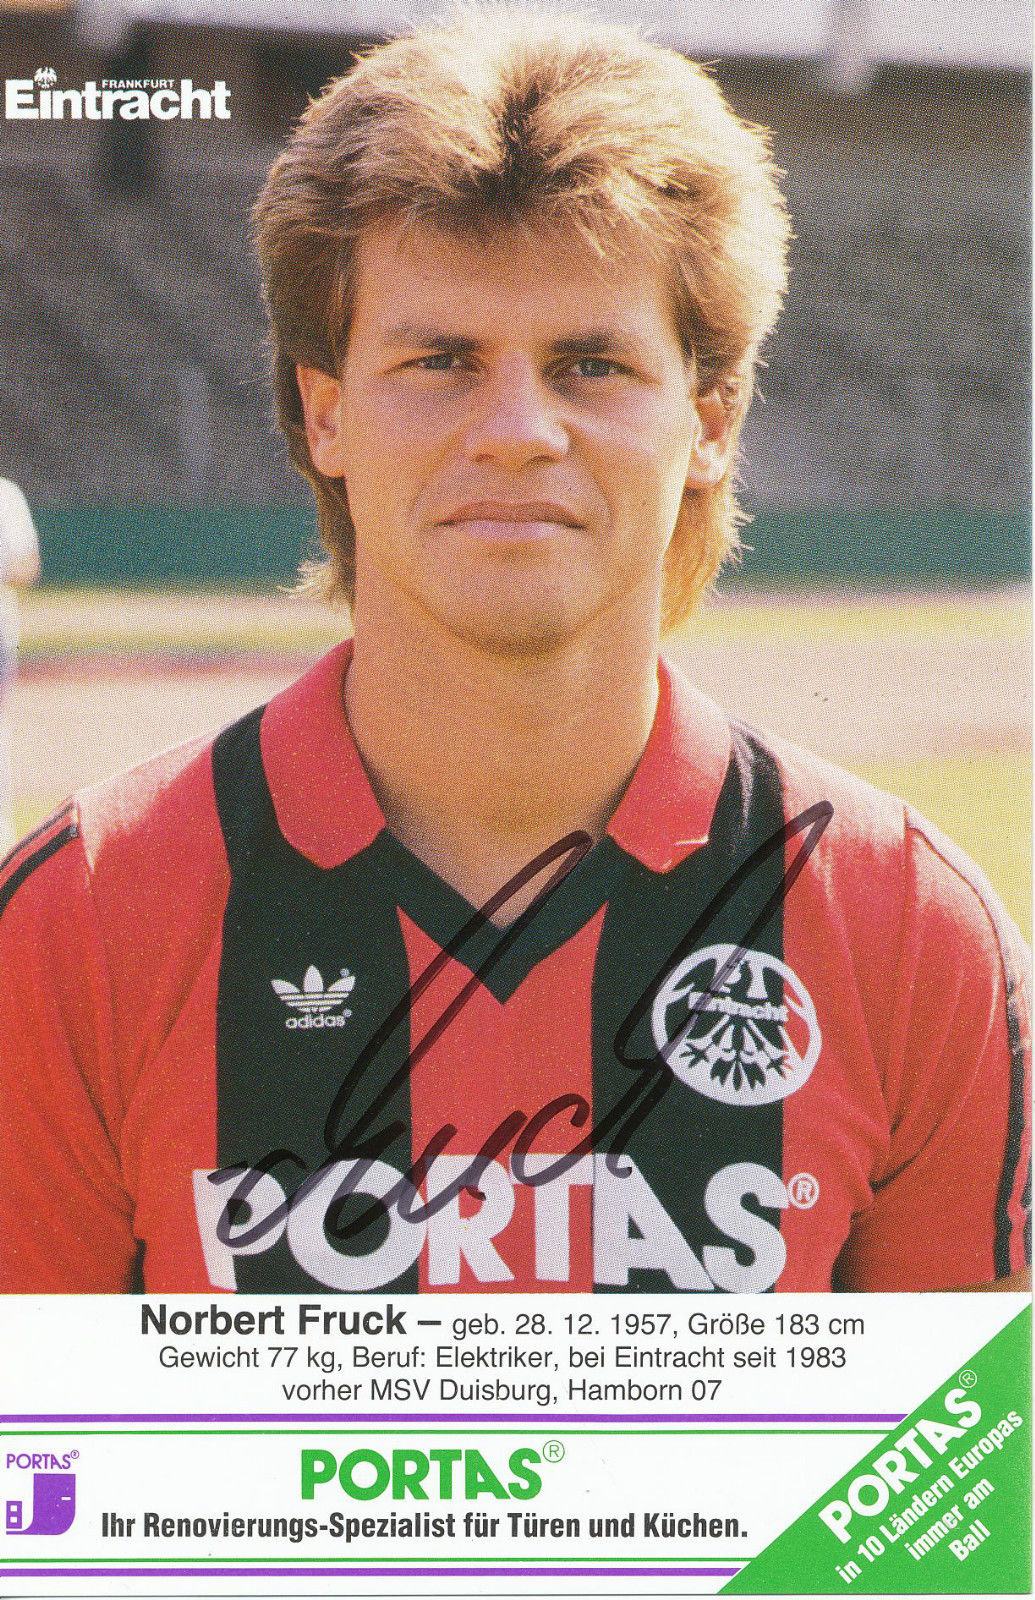 Astounding Elektriker Frankfurt Gallery Of Football Exchange: Eintracht - Eintracht Autogrammkarten (1985-86)